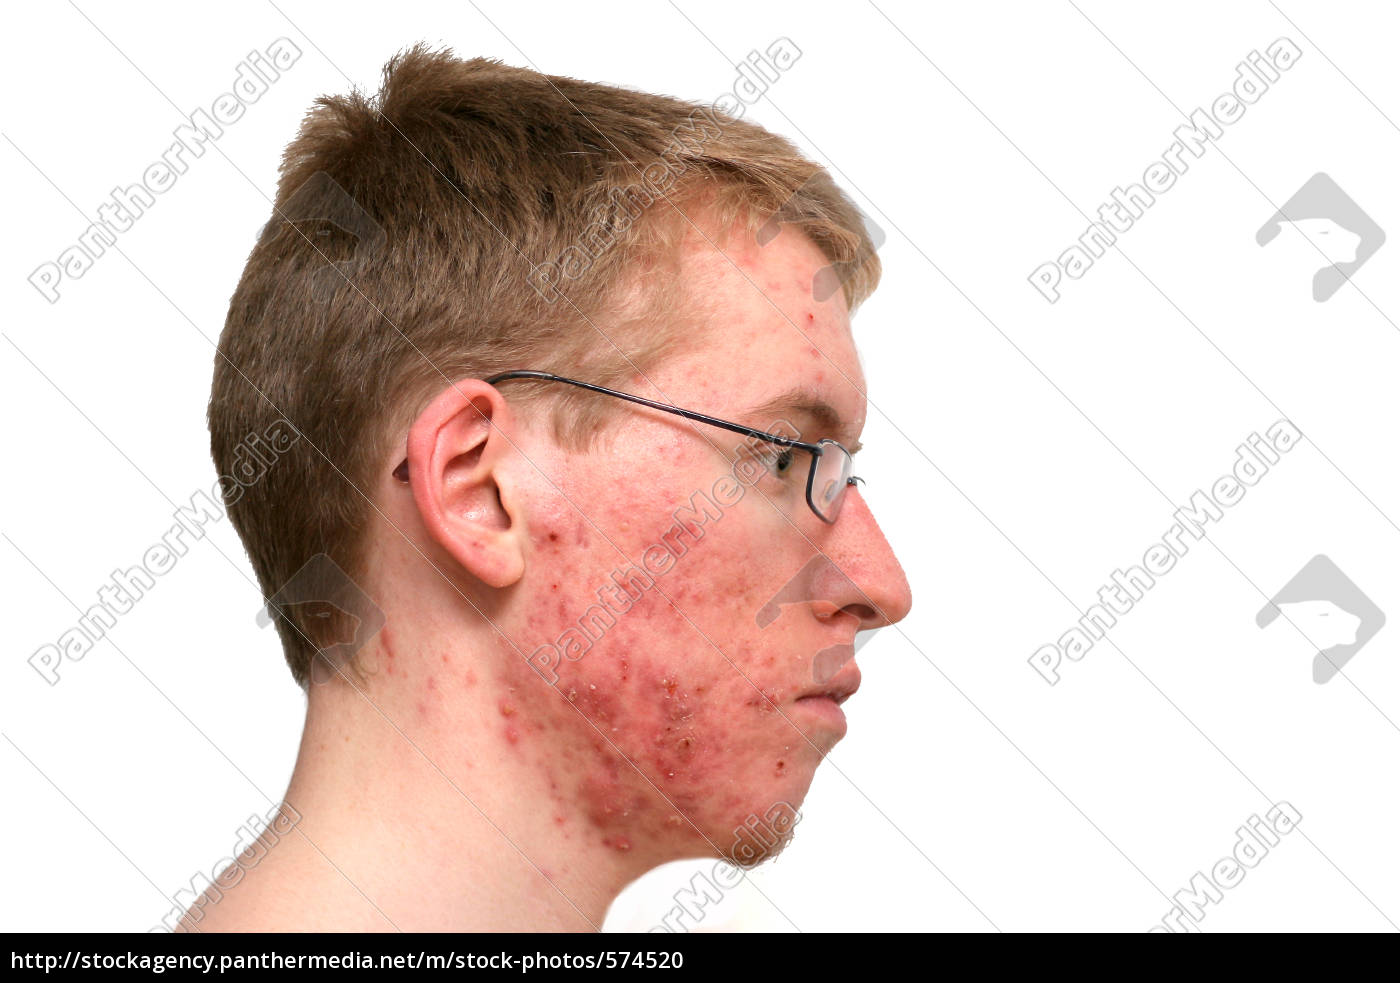 after, a, week, with, isotretionoin - 574520